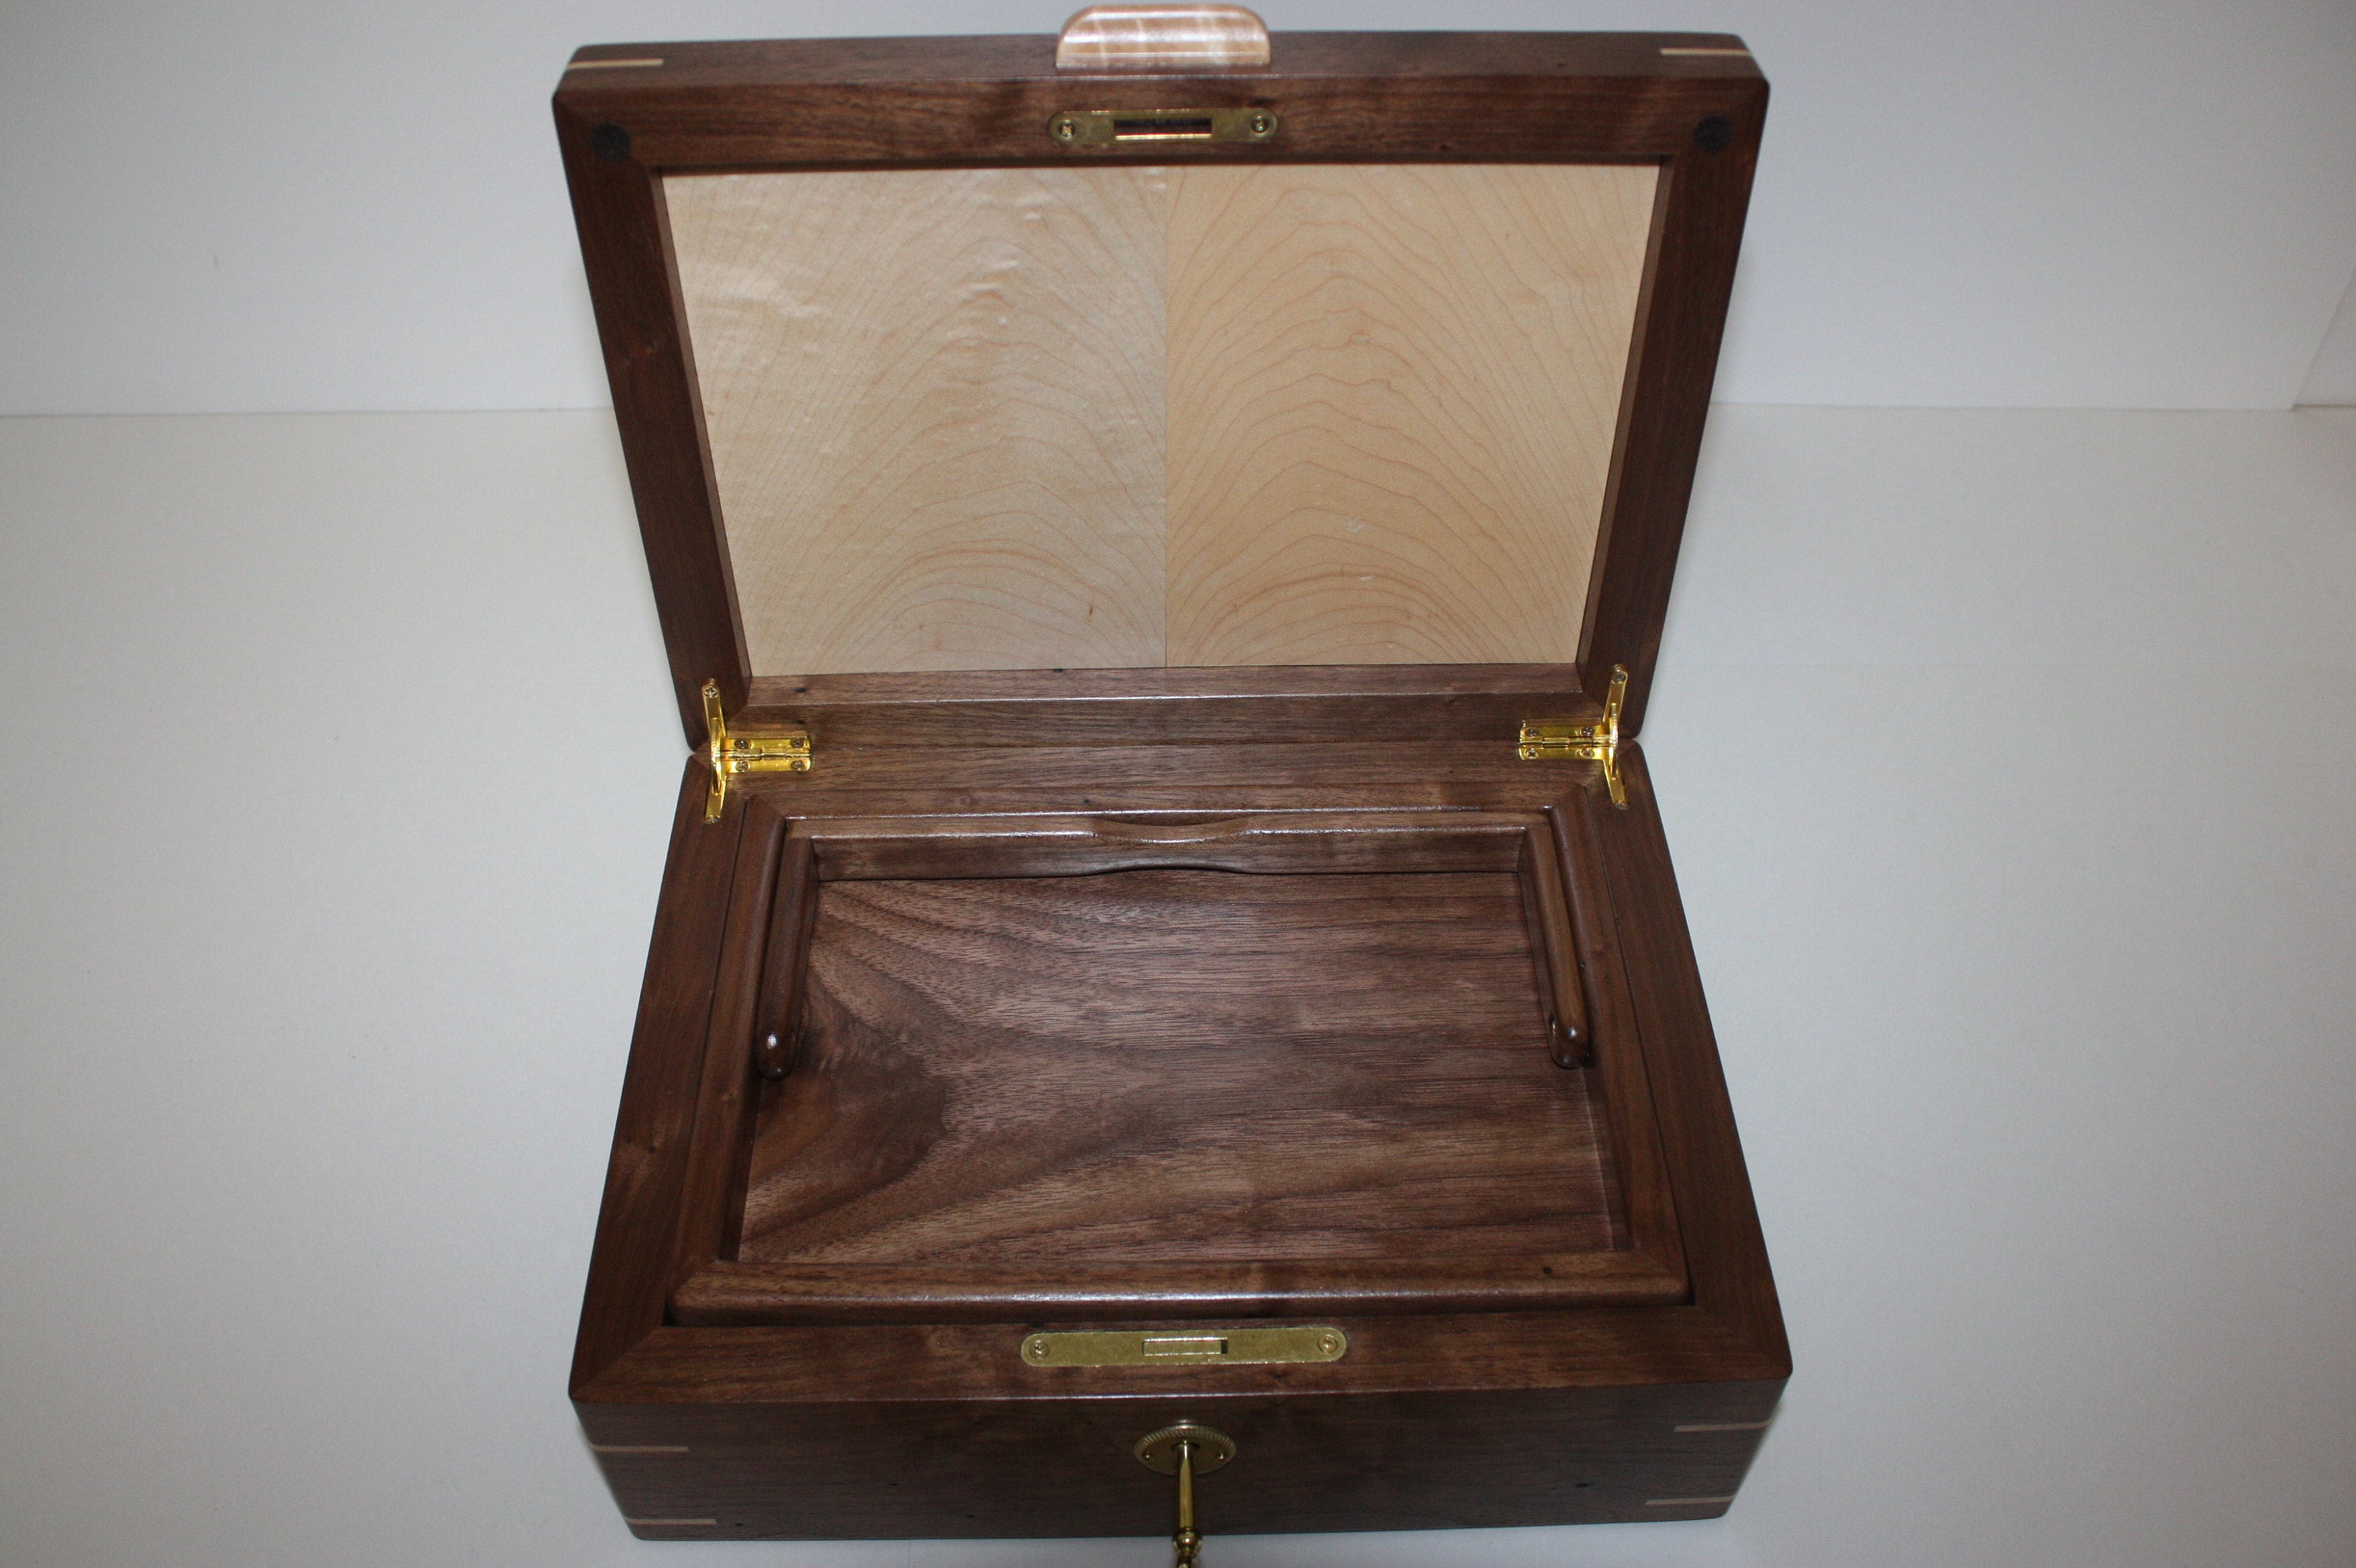 Walnut and Maple Wood Box with Lift Out Tray